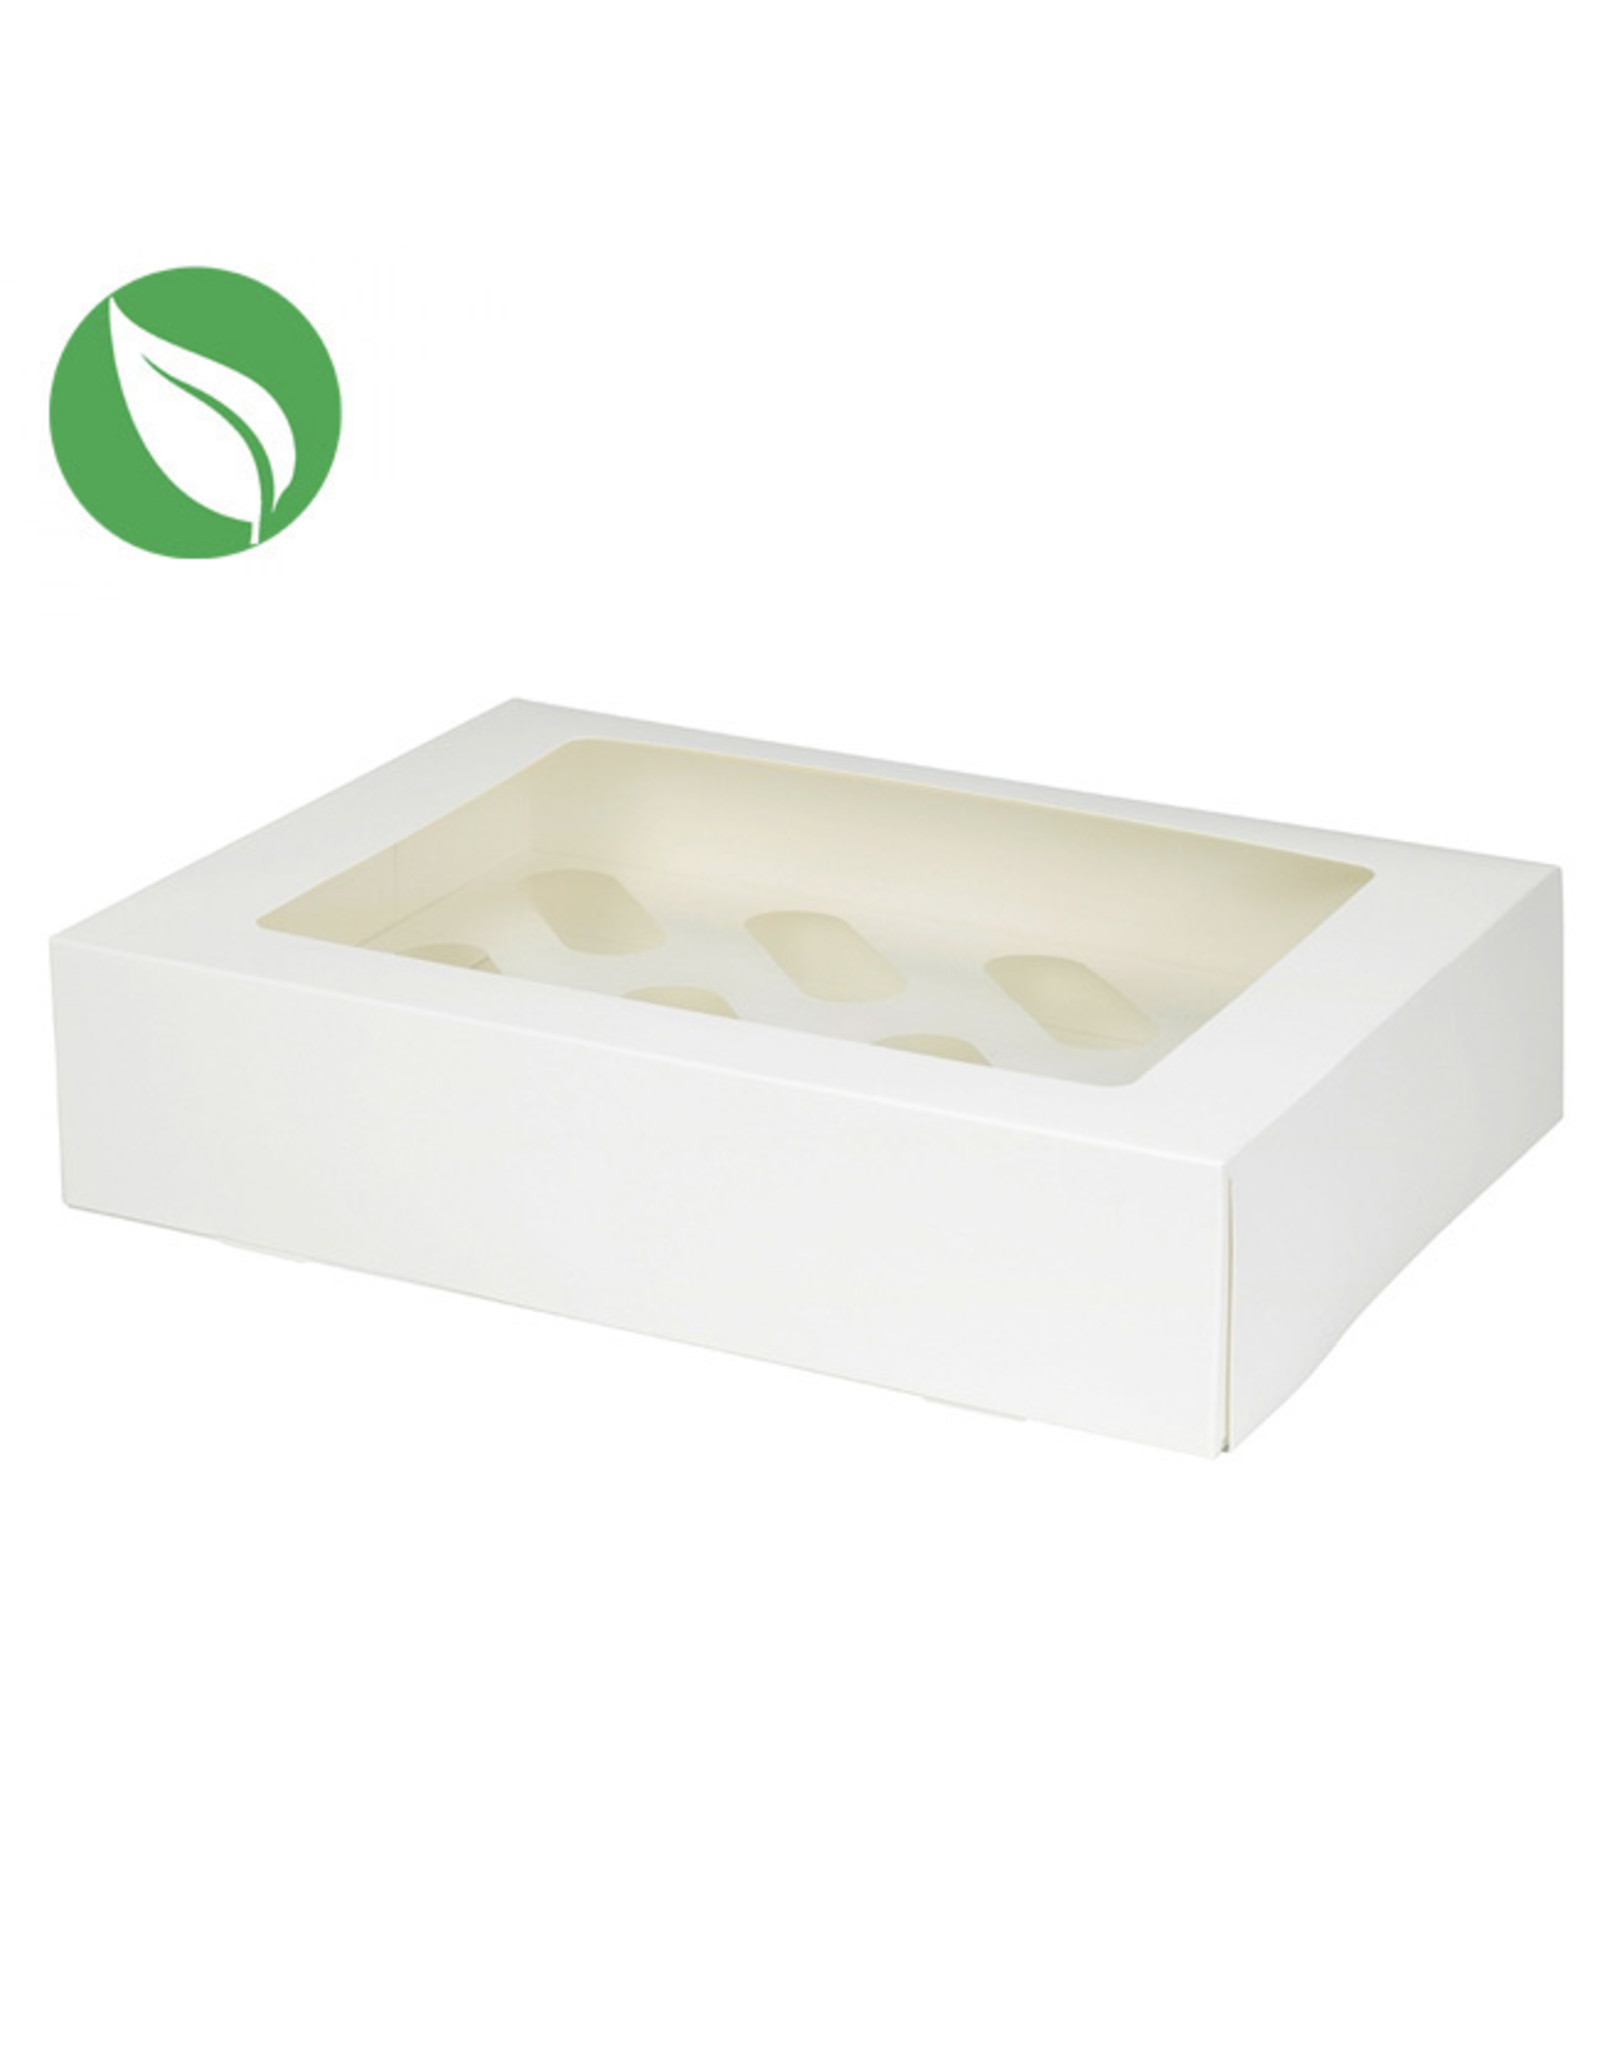 Biodegradable box for 12 cupcakes (per 25 pieces)